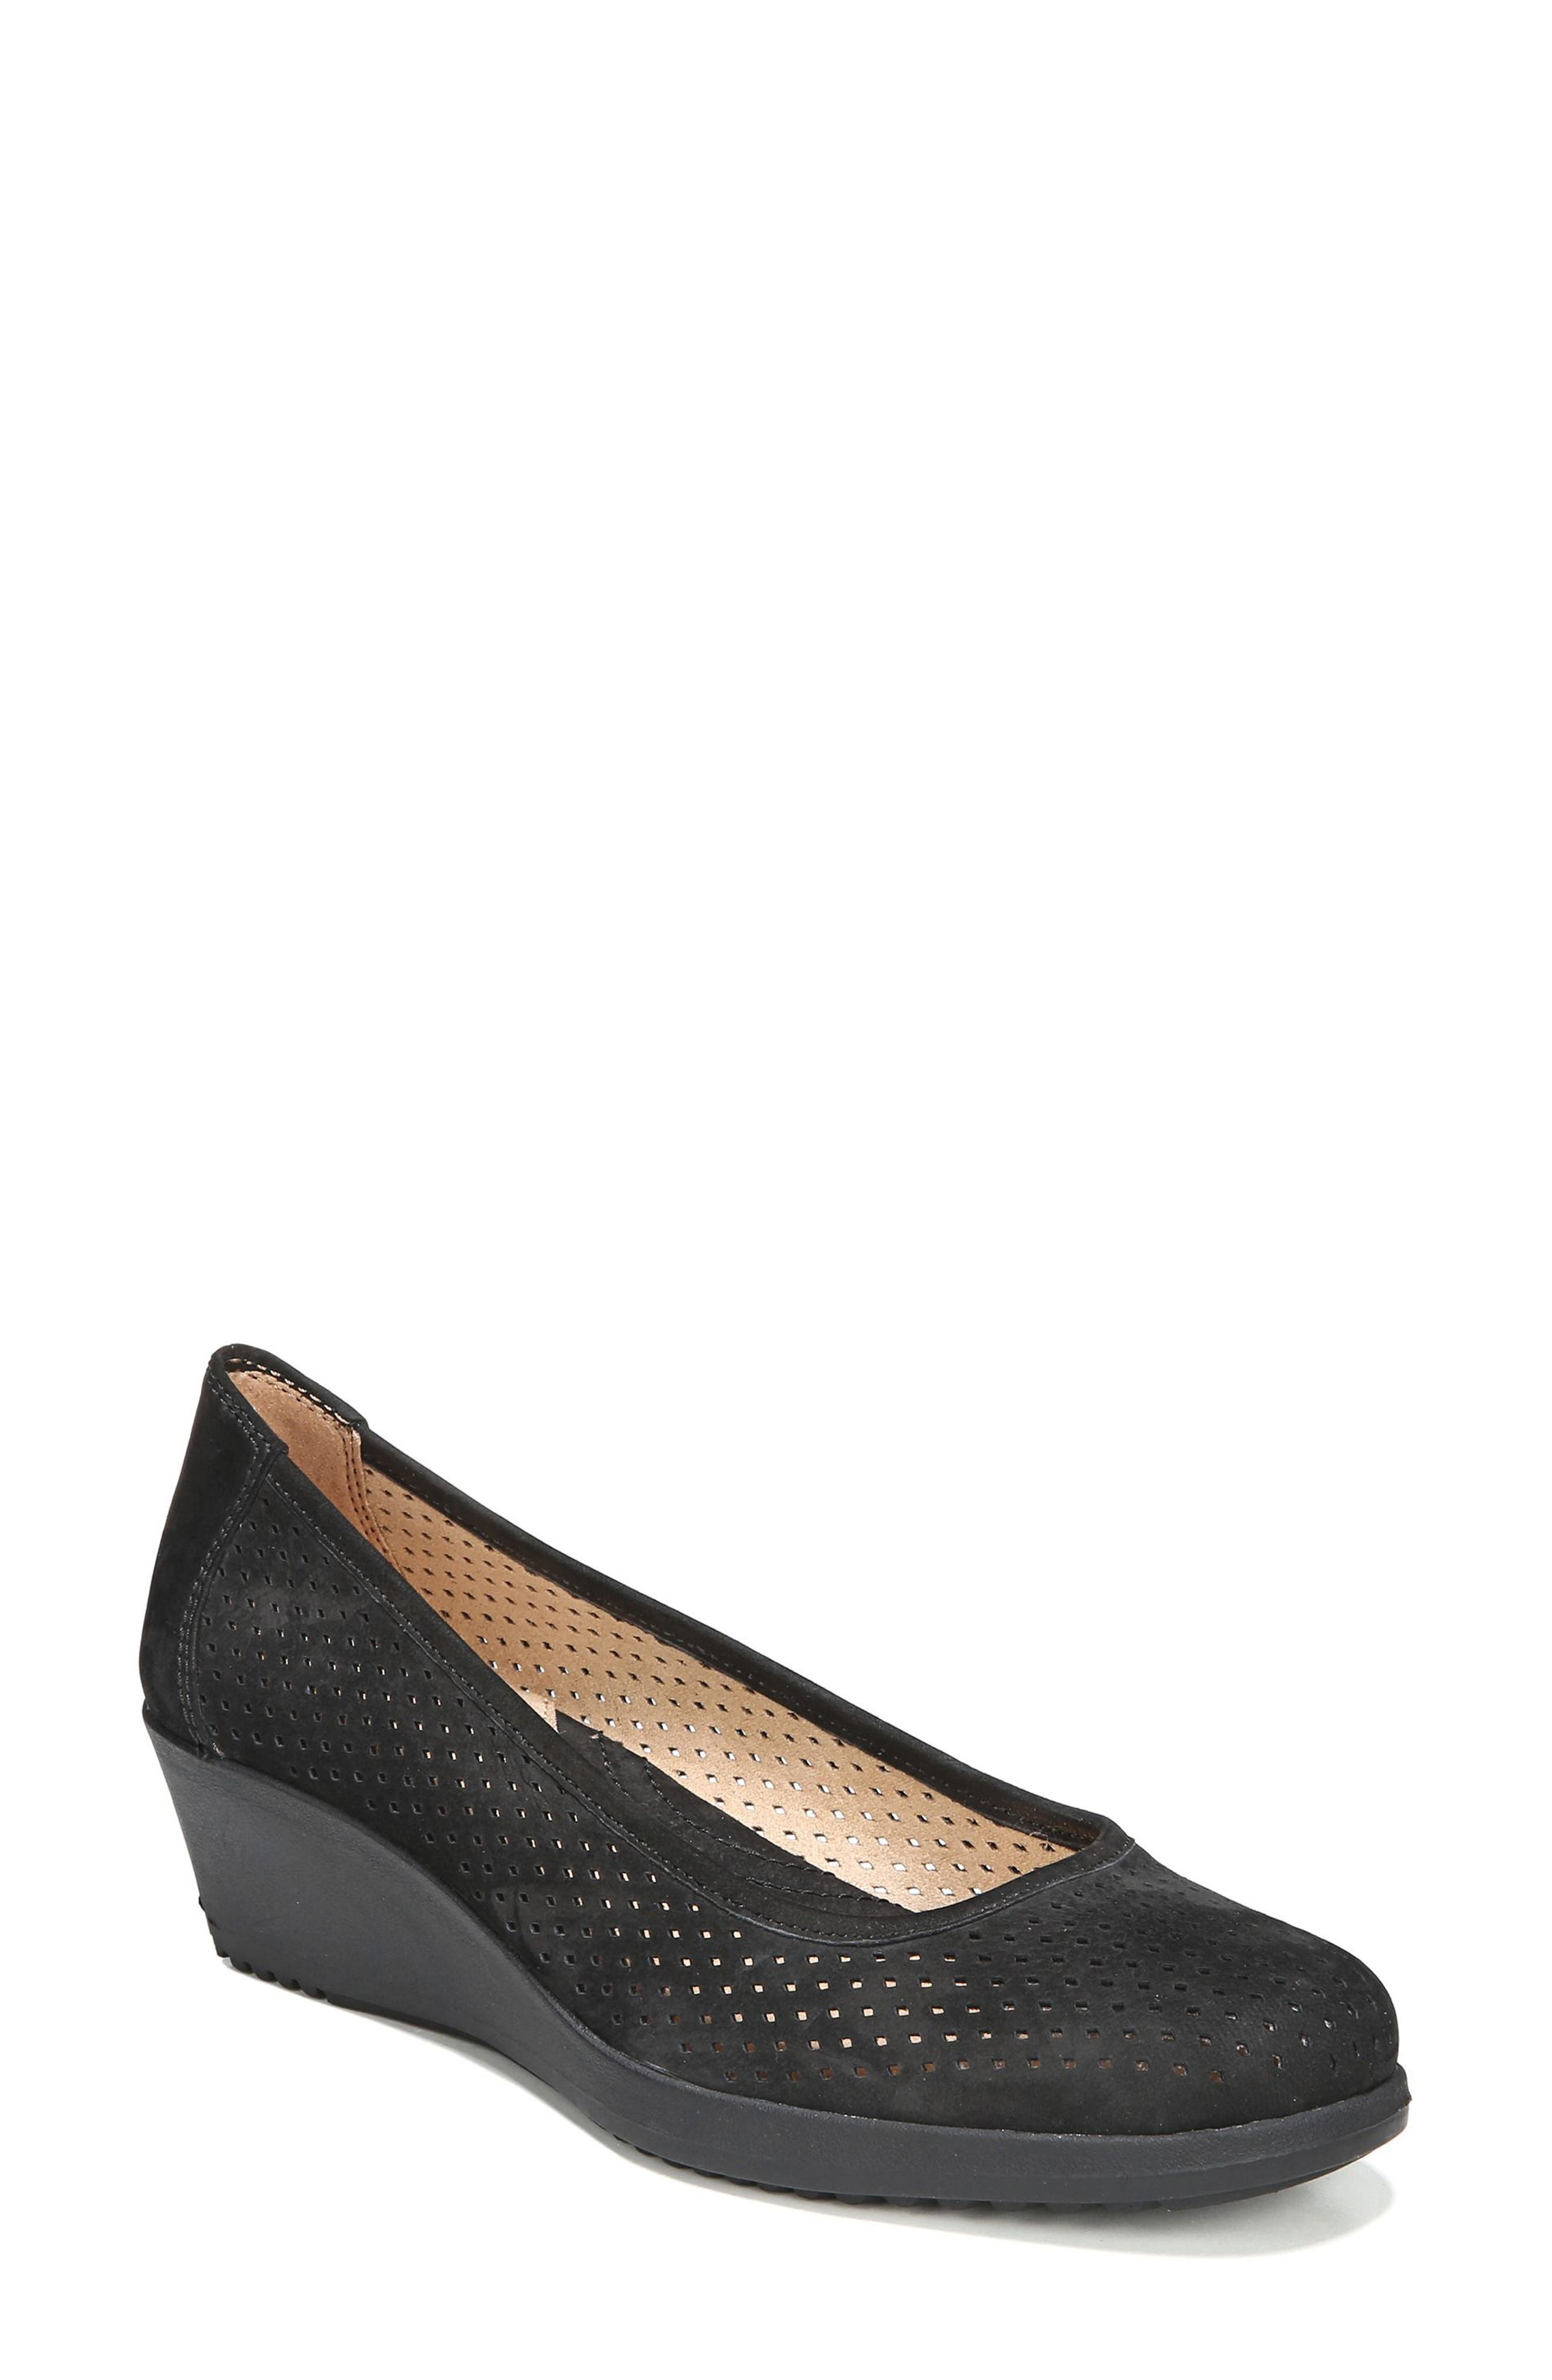 Betina II Wedge,                         Main,                         color, Black Leather